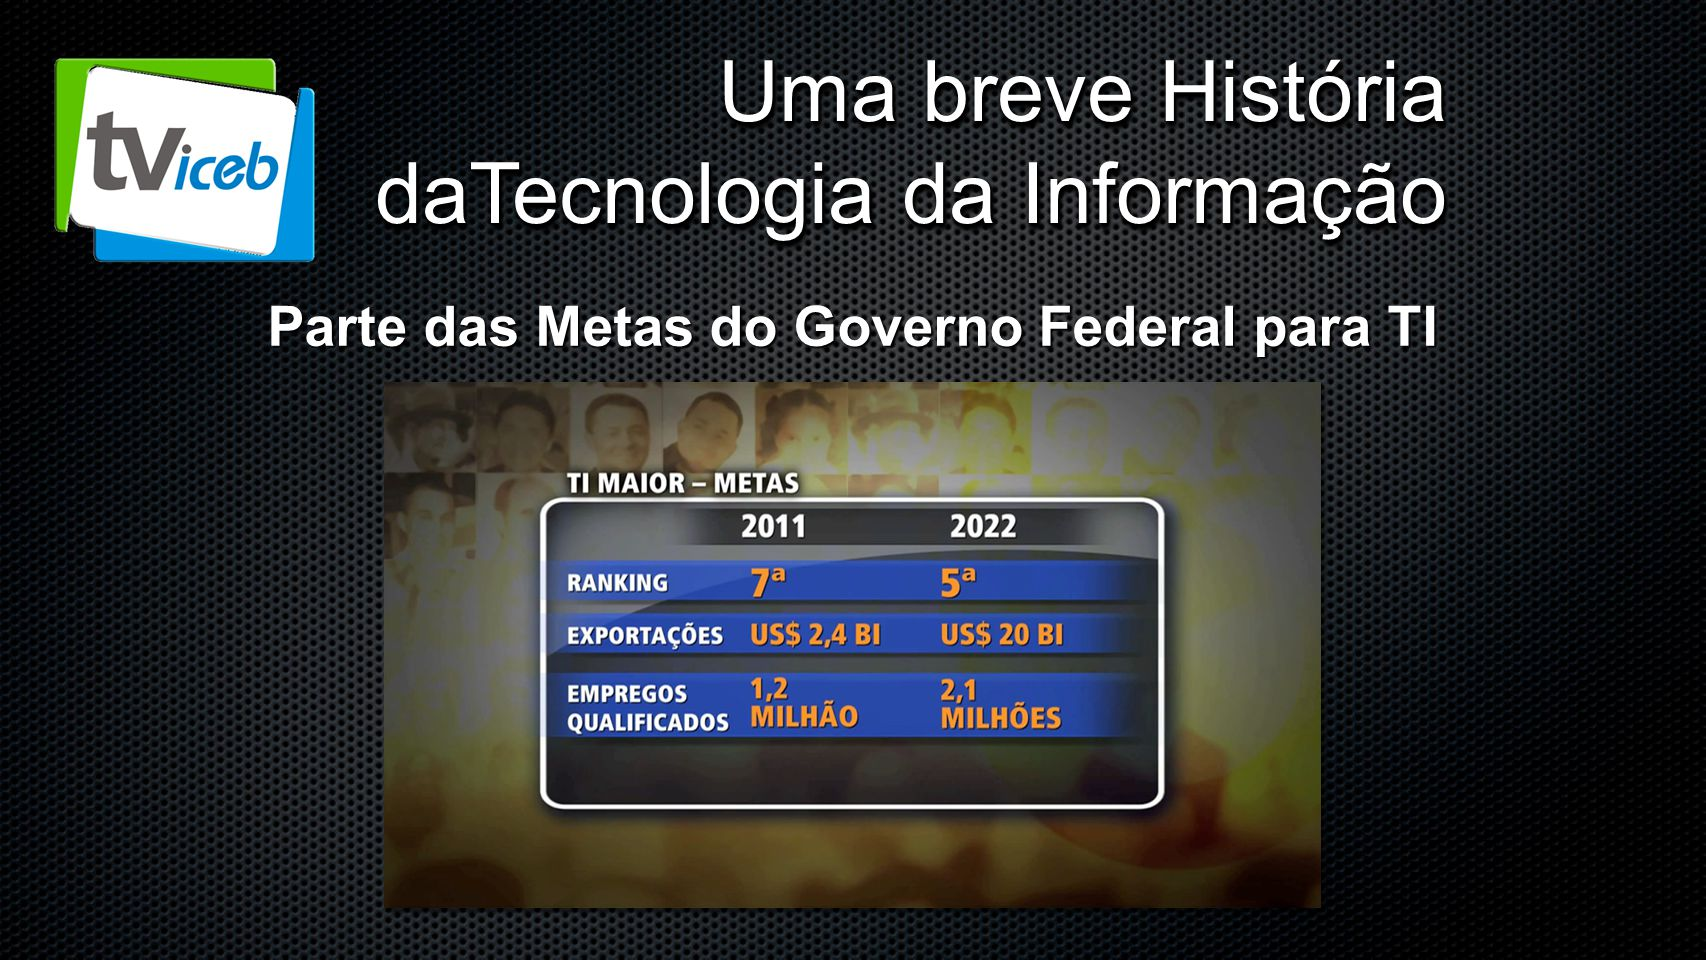 Parte das Metas do Governo Federal para TI